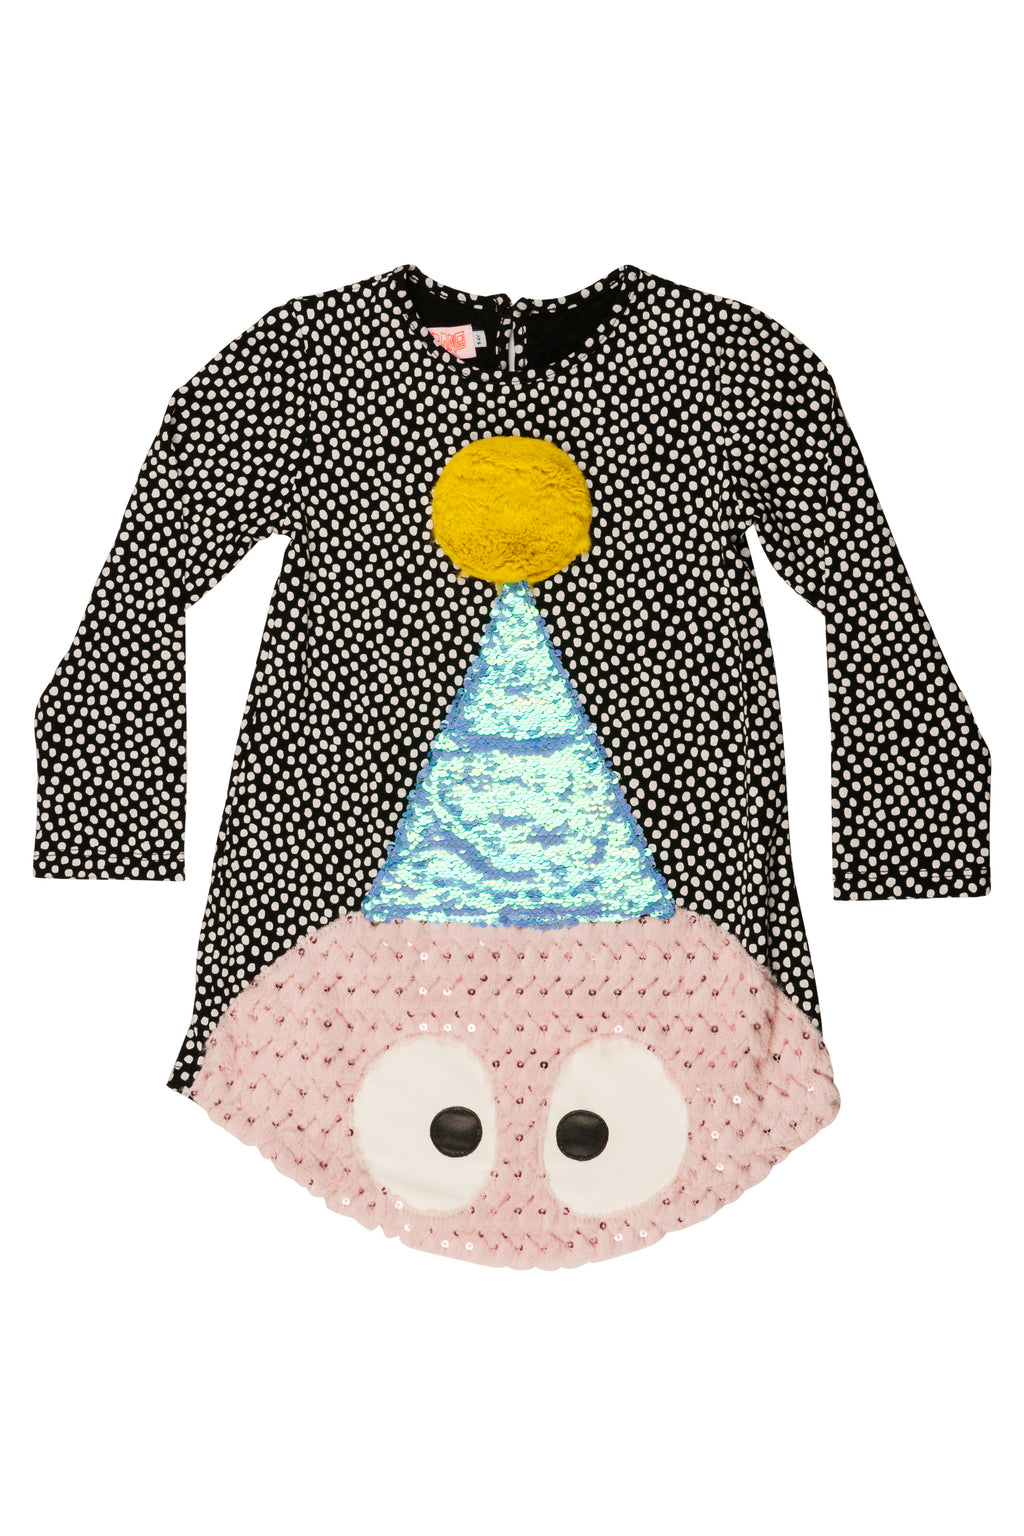 Wauwcapow by Bangbang Copenhagen - Surprise Dot - Dress